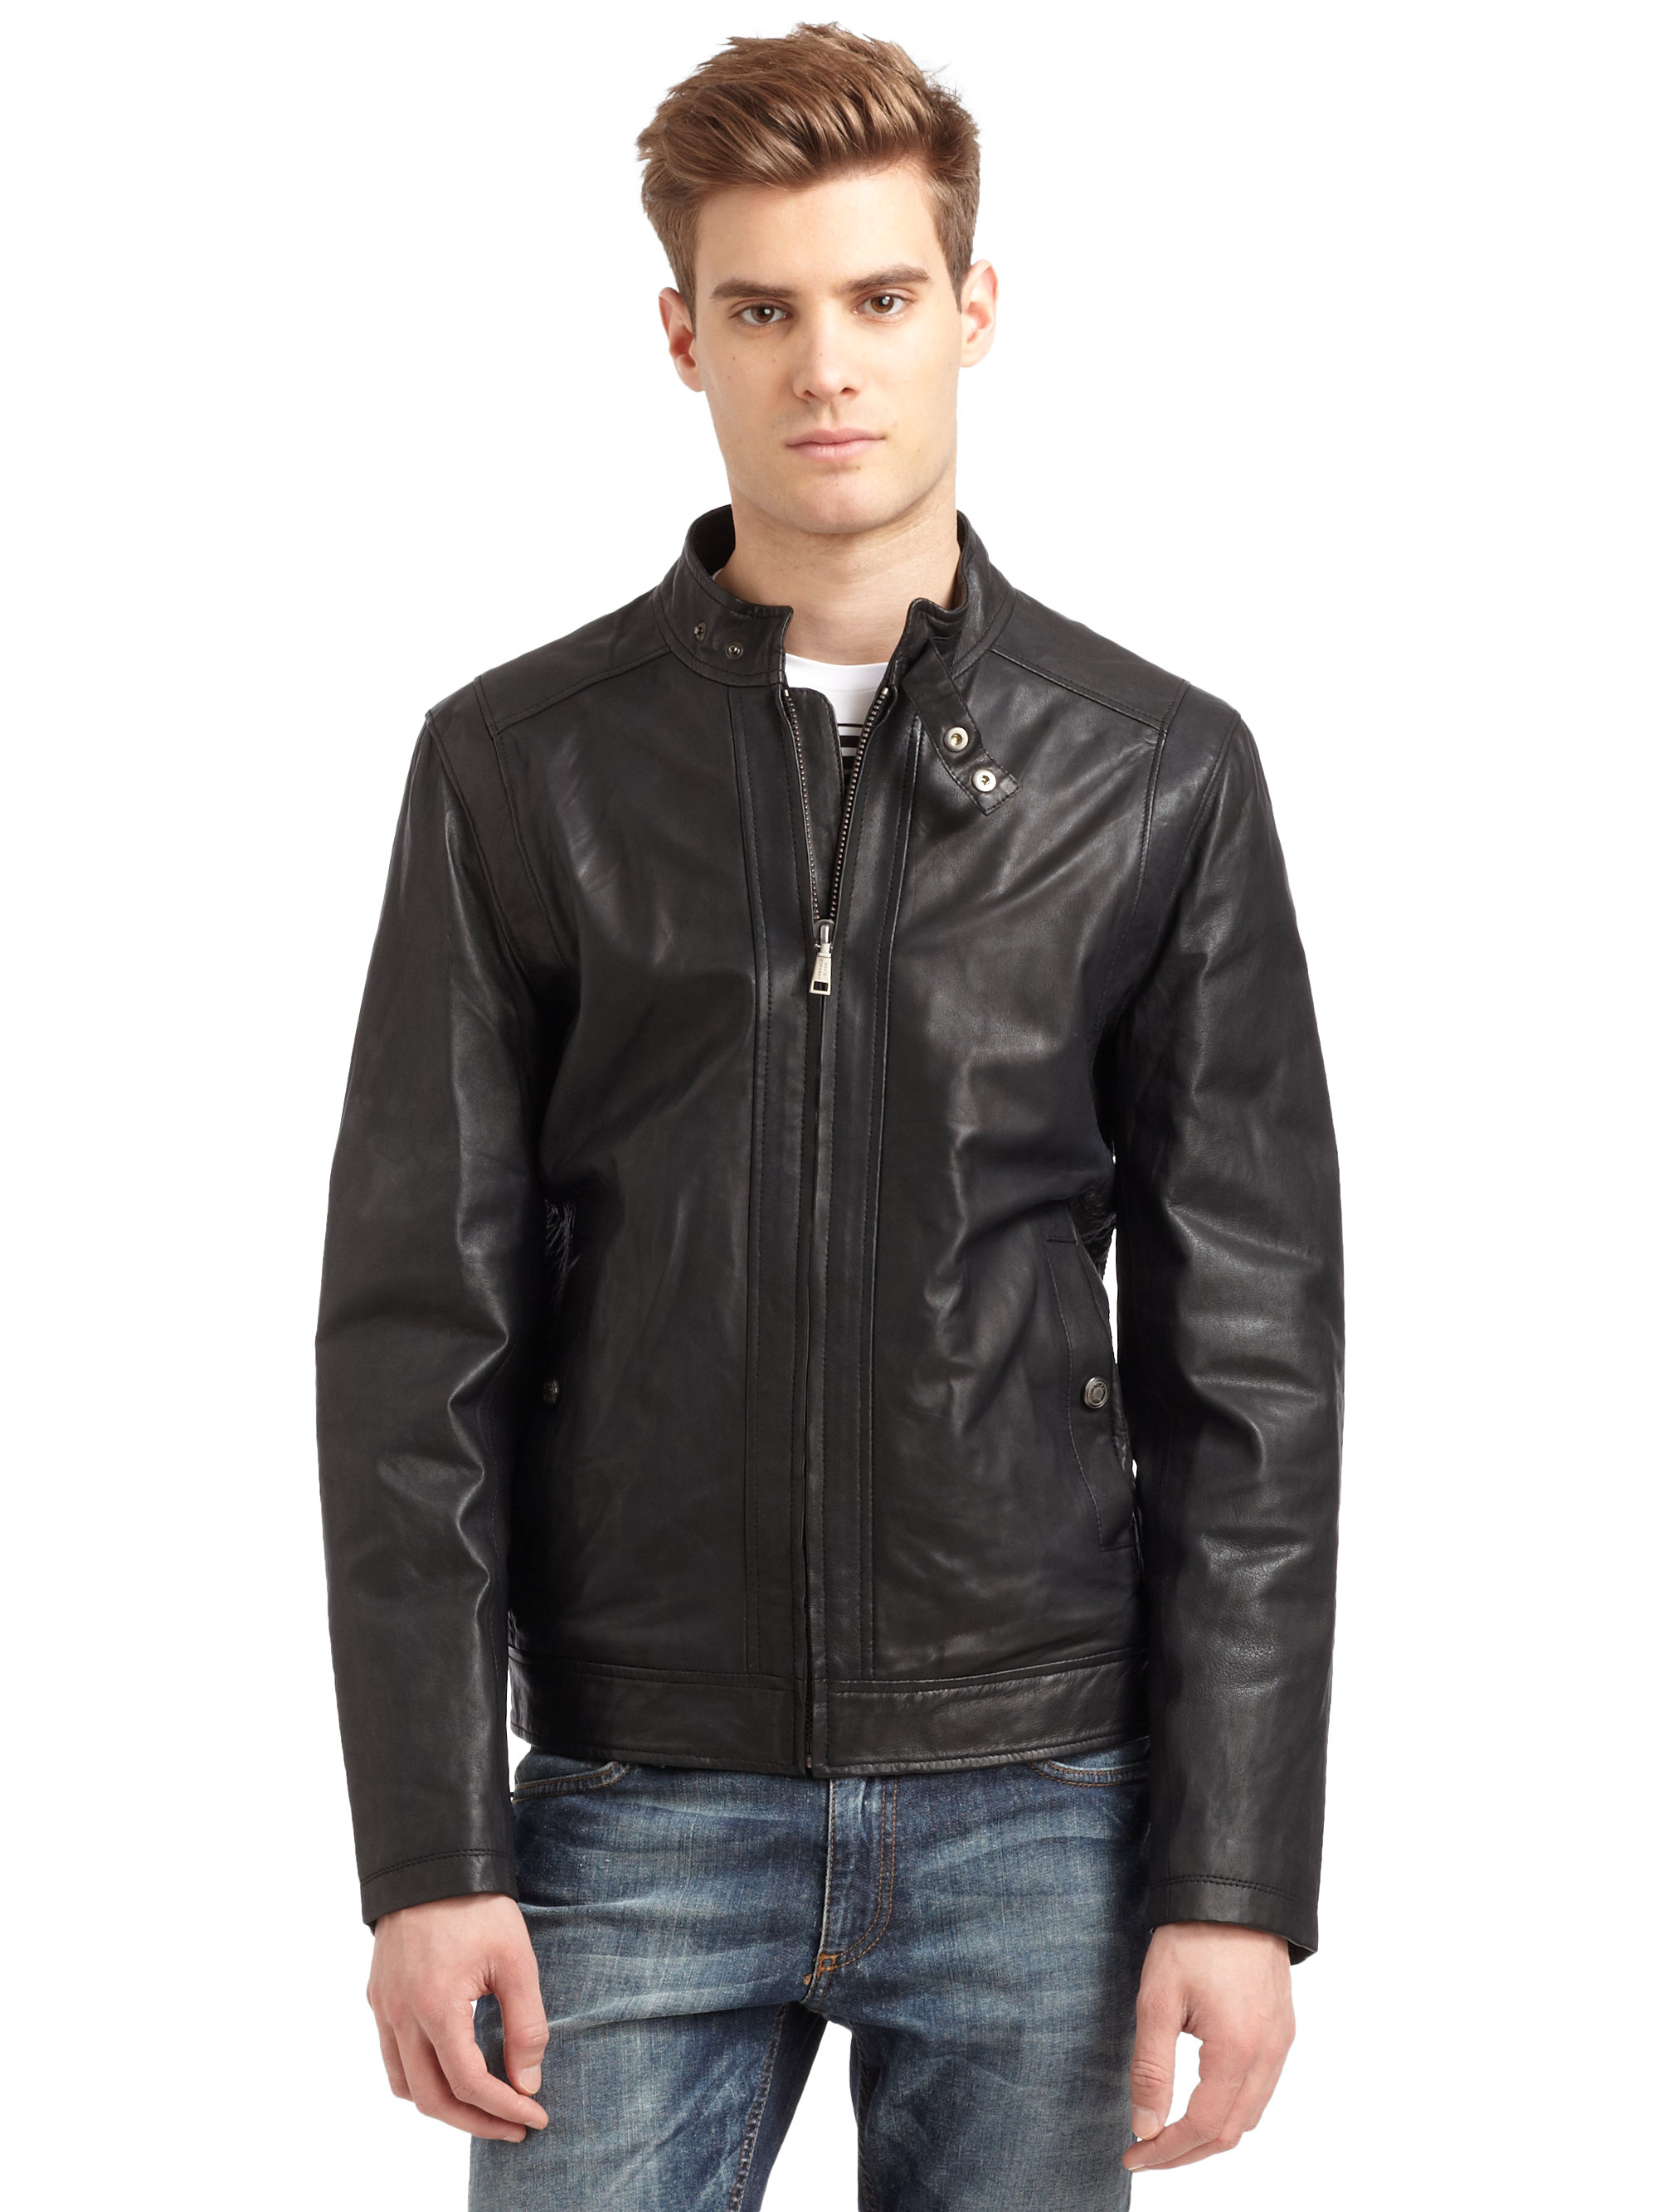 Versace Jeans Variegated Leather Jacket In Red For Men Lyst